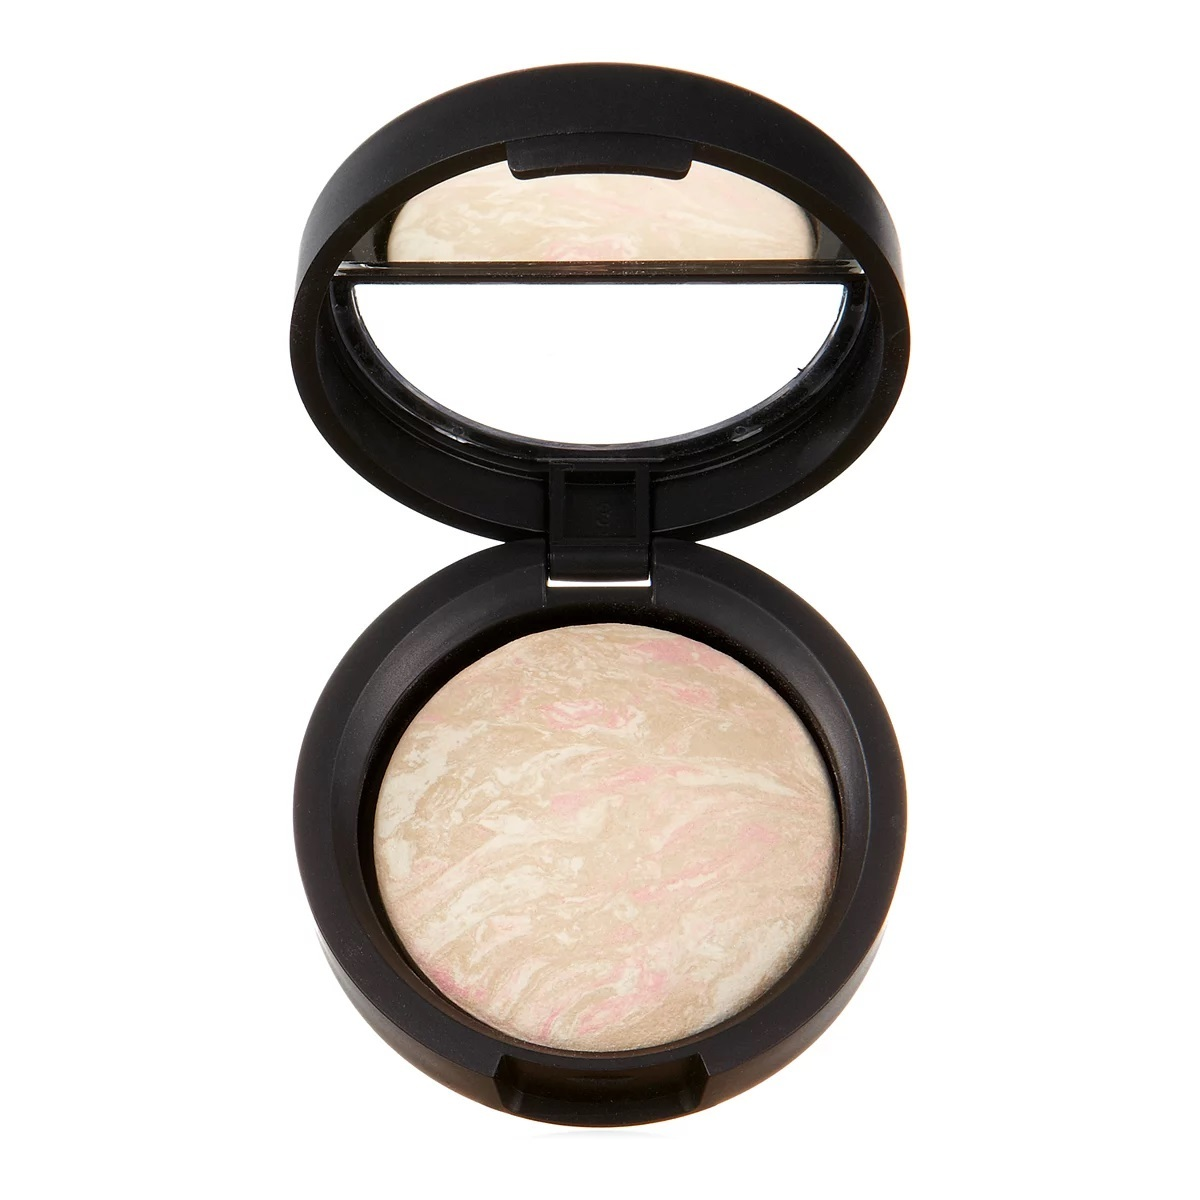 Primary image for Laura Geller Balance-n-Brighten Baked Face Powder - Porcelain